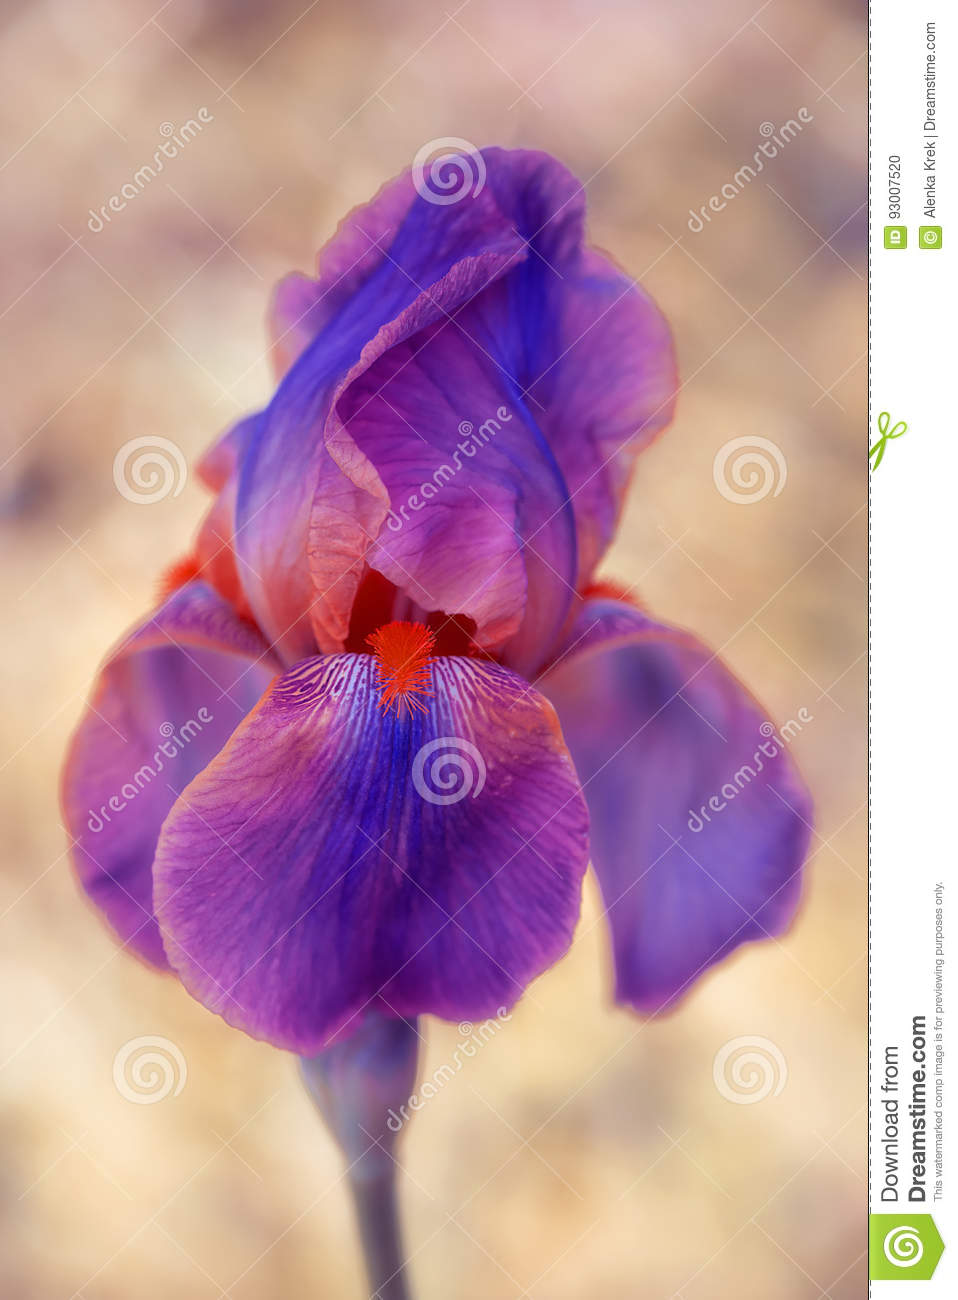 Closeup of surreal violet and red iris flower stock photo image of download closeup of surreal violet and red iris flower stock photo image of spring izmirmasajfo